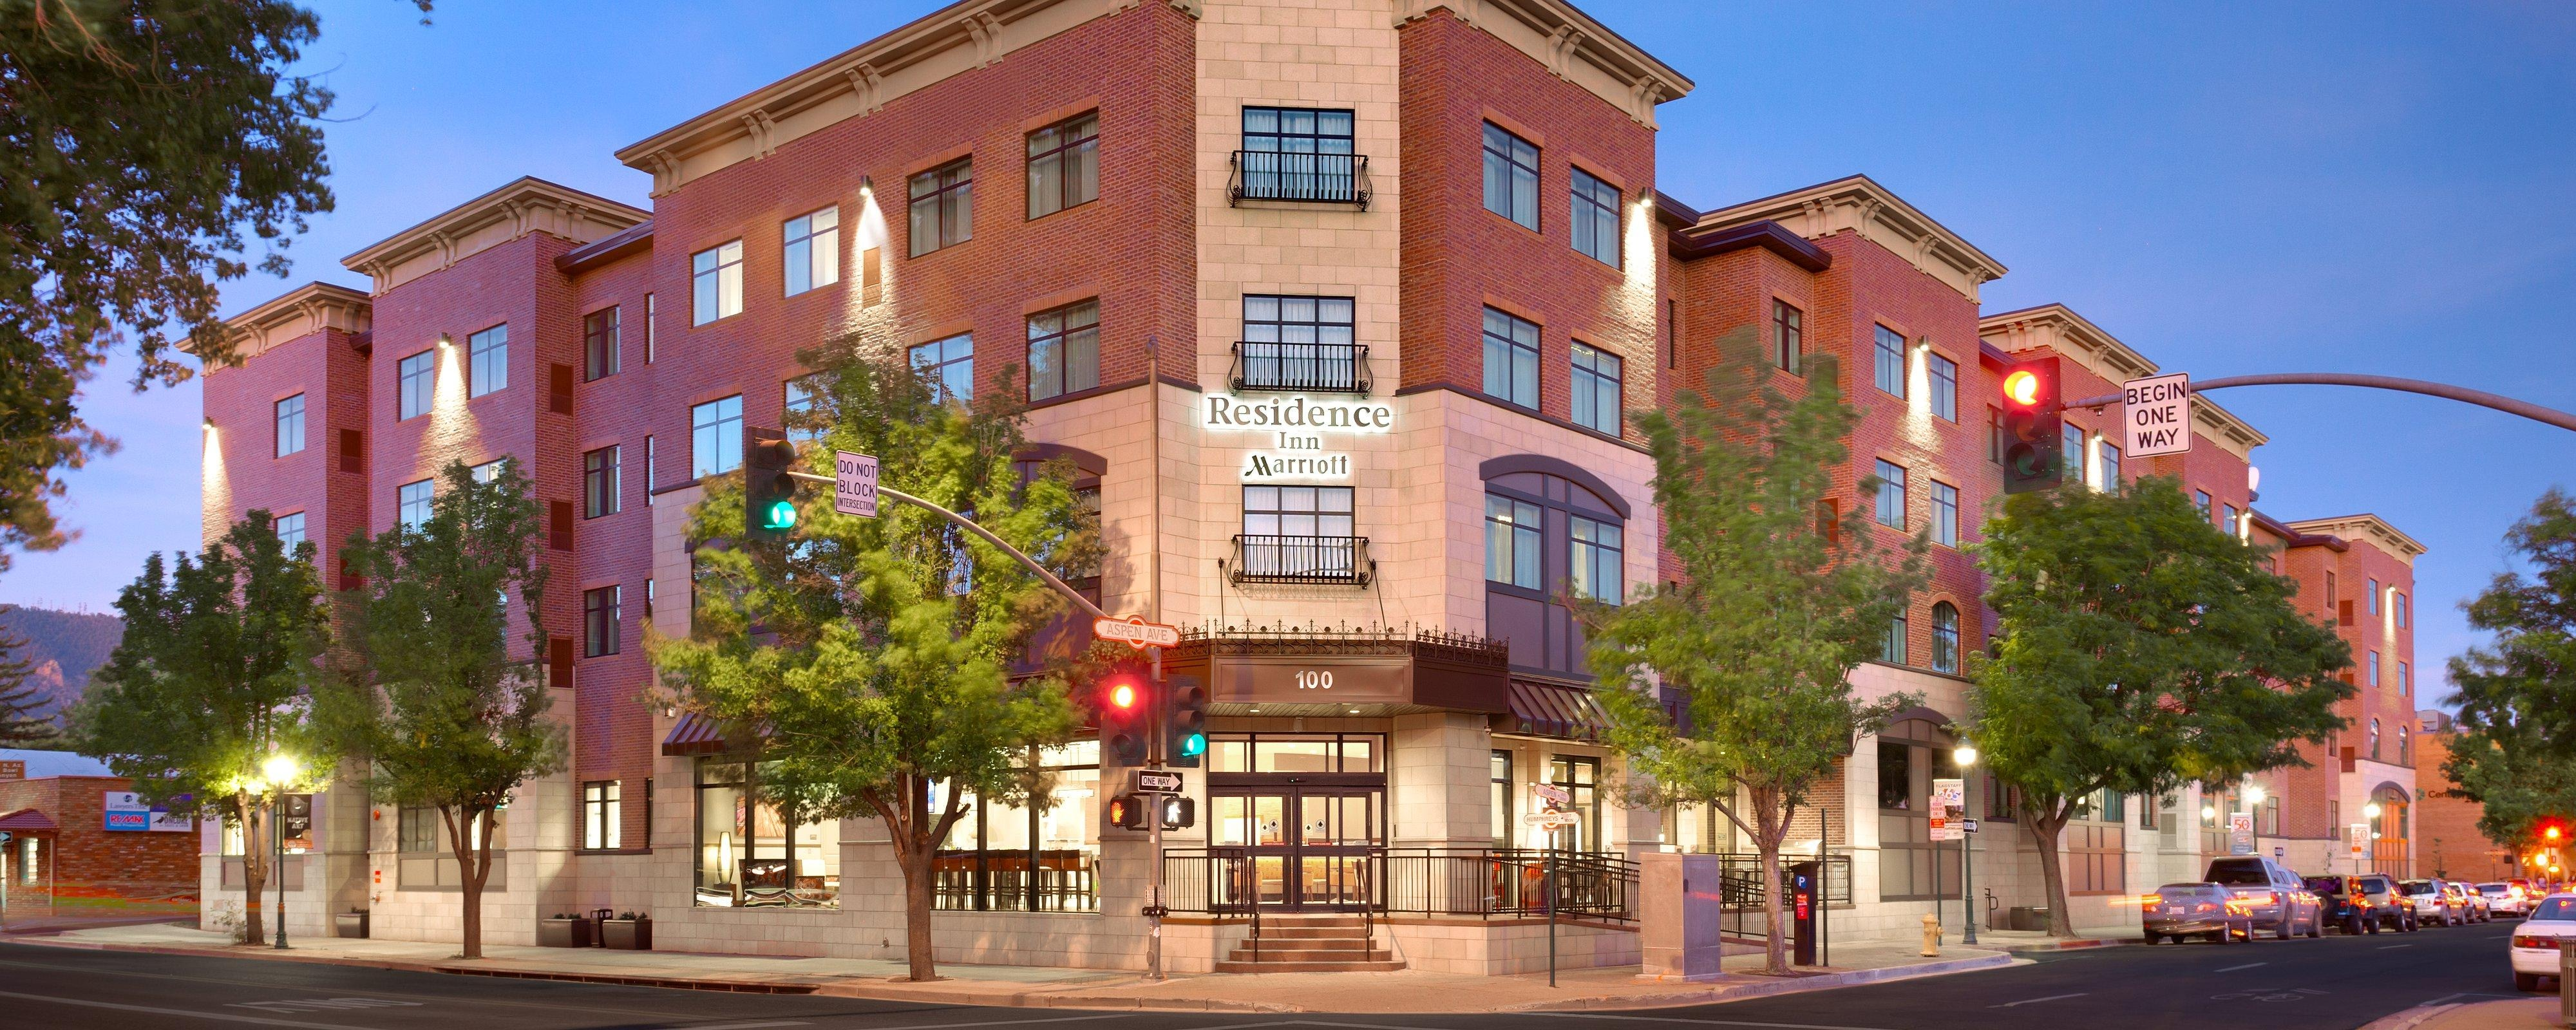 Flagstaff Extended Stay Hotels